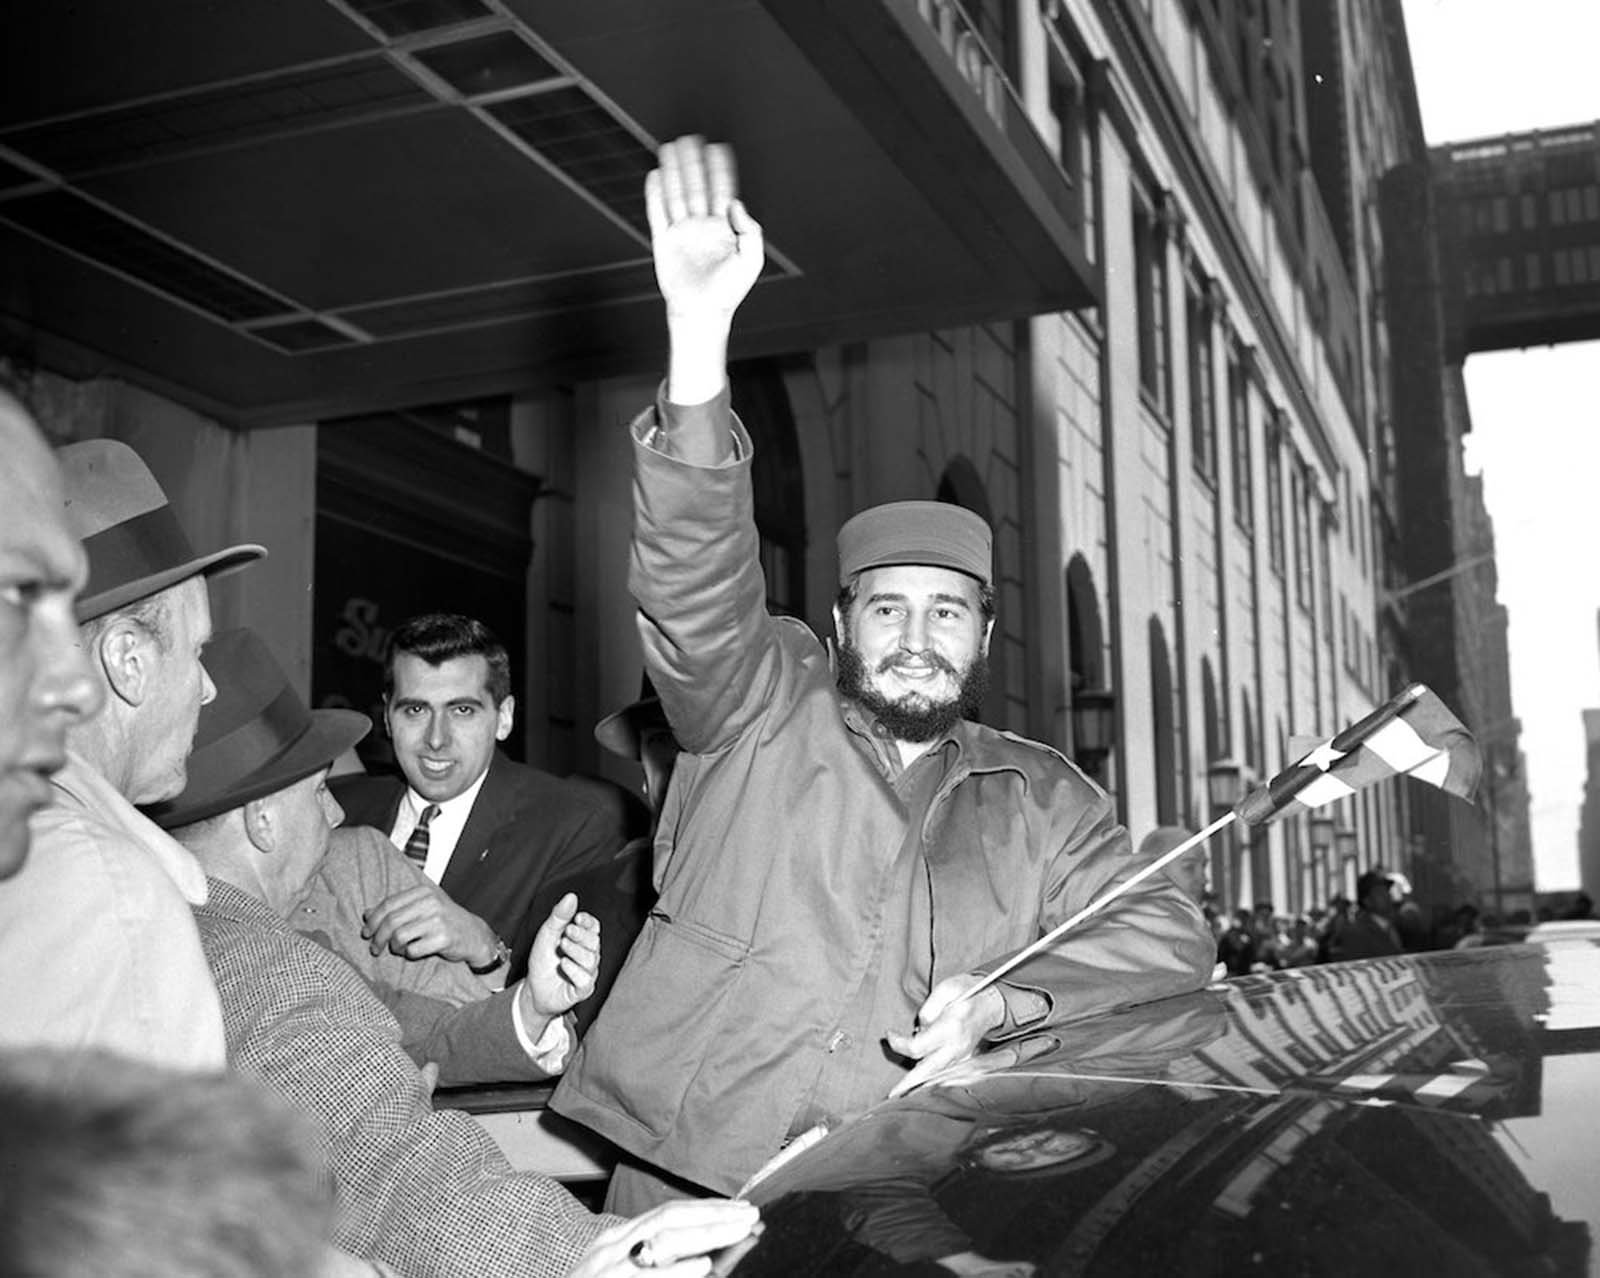 Castro waves to crowds outside the Statler Hotel.